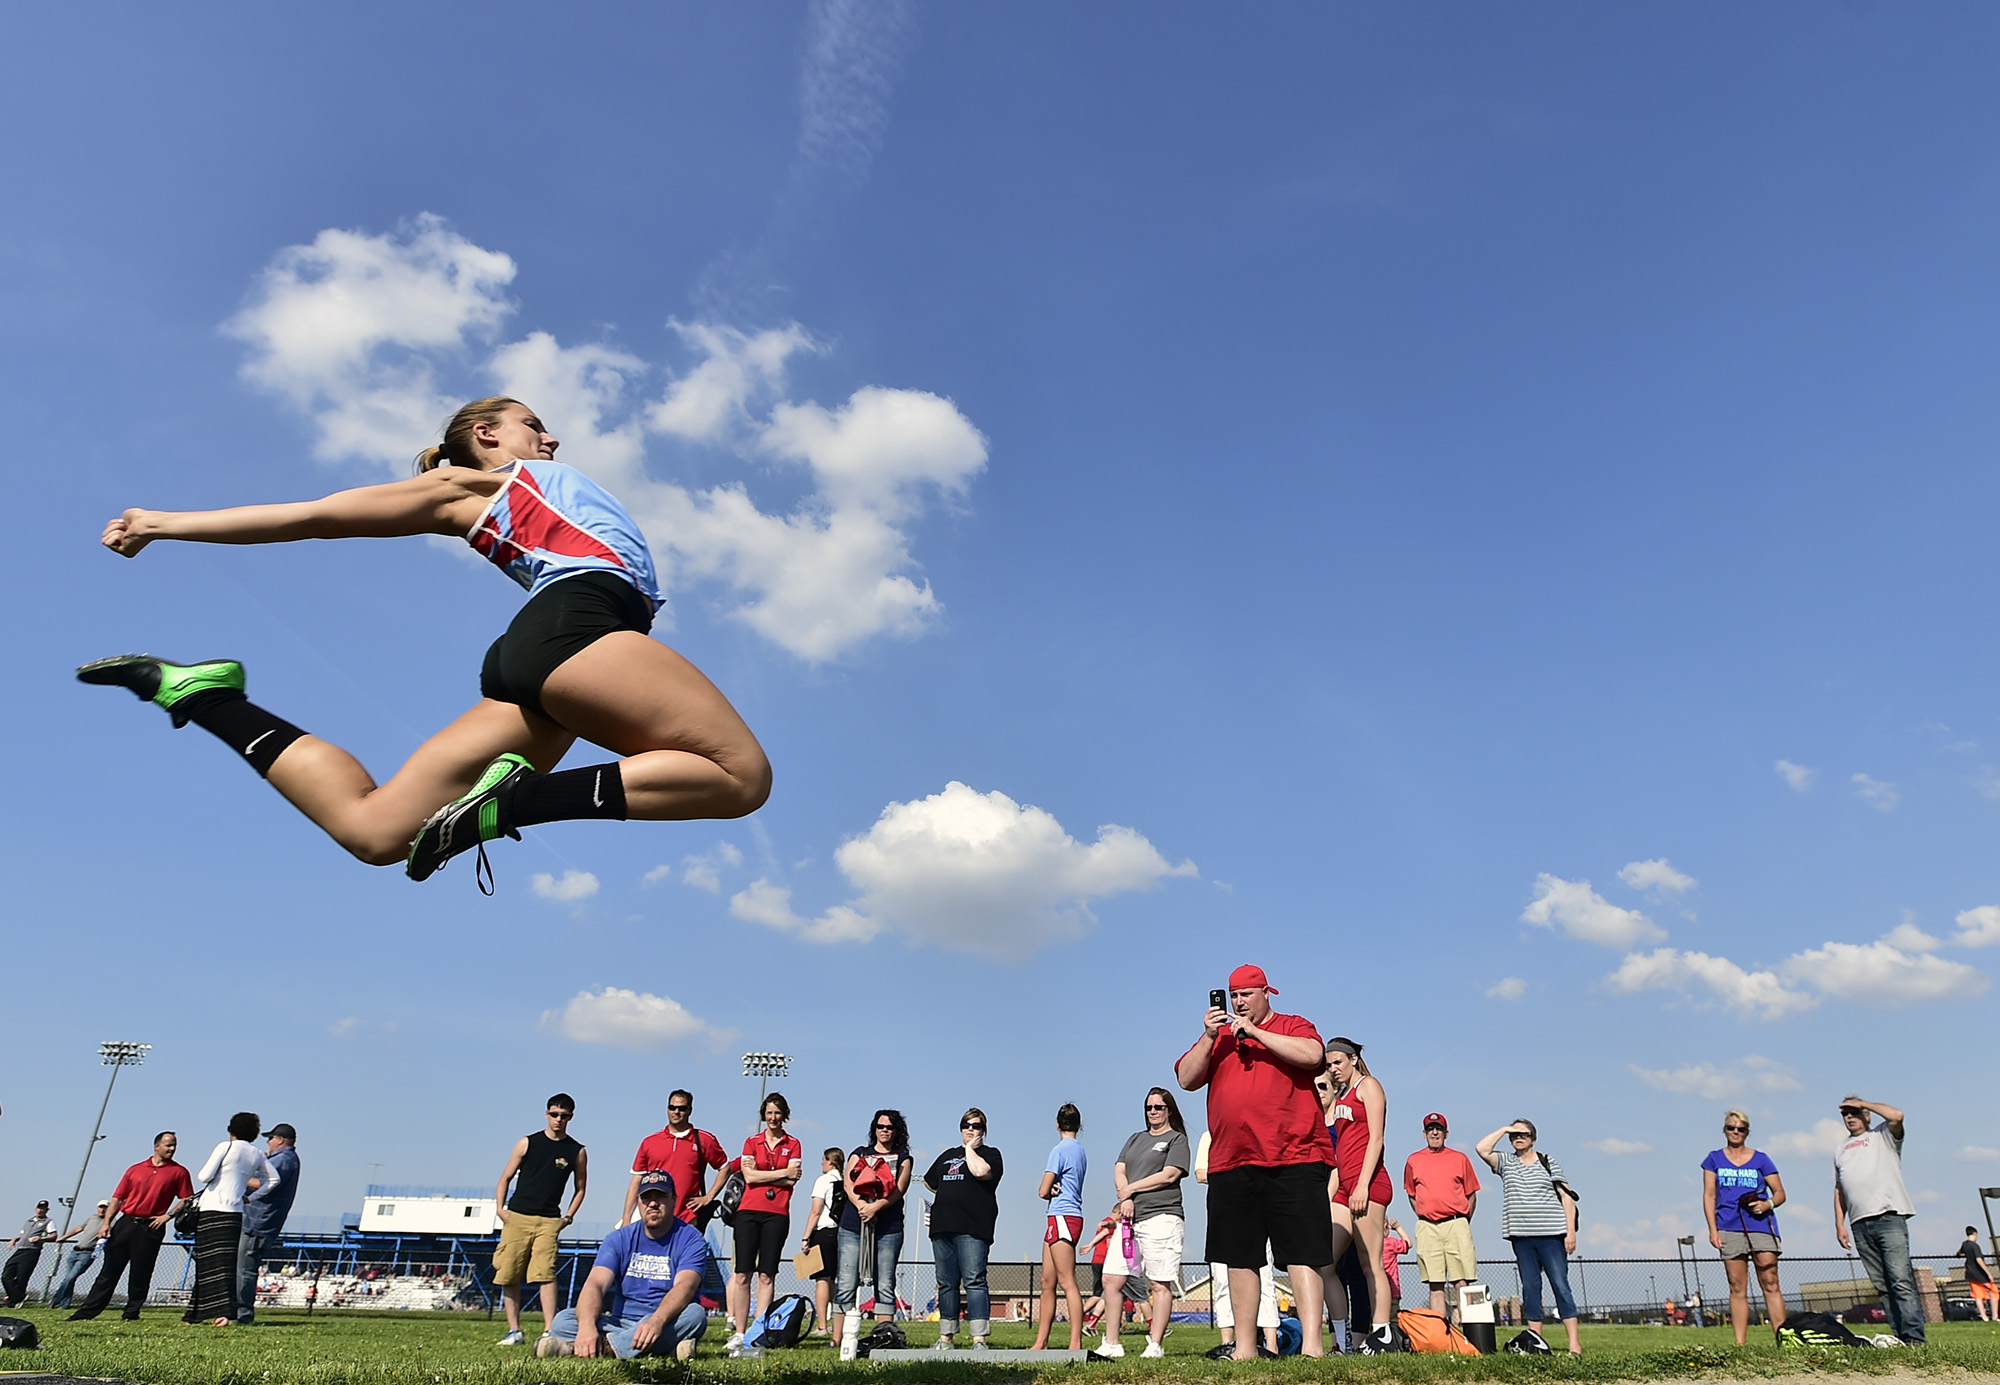 Ridgedale's Laney Davis takes to the air during the long jump event at the Marion County Track Meet hosted at River Valley high school on Wednesday, May 6.